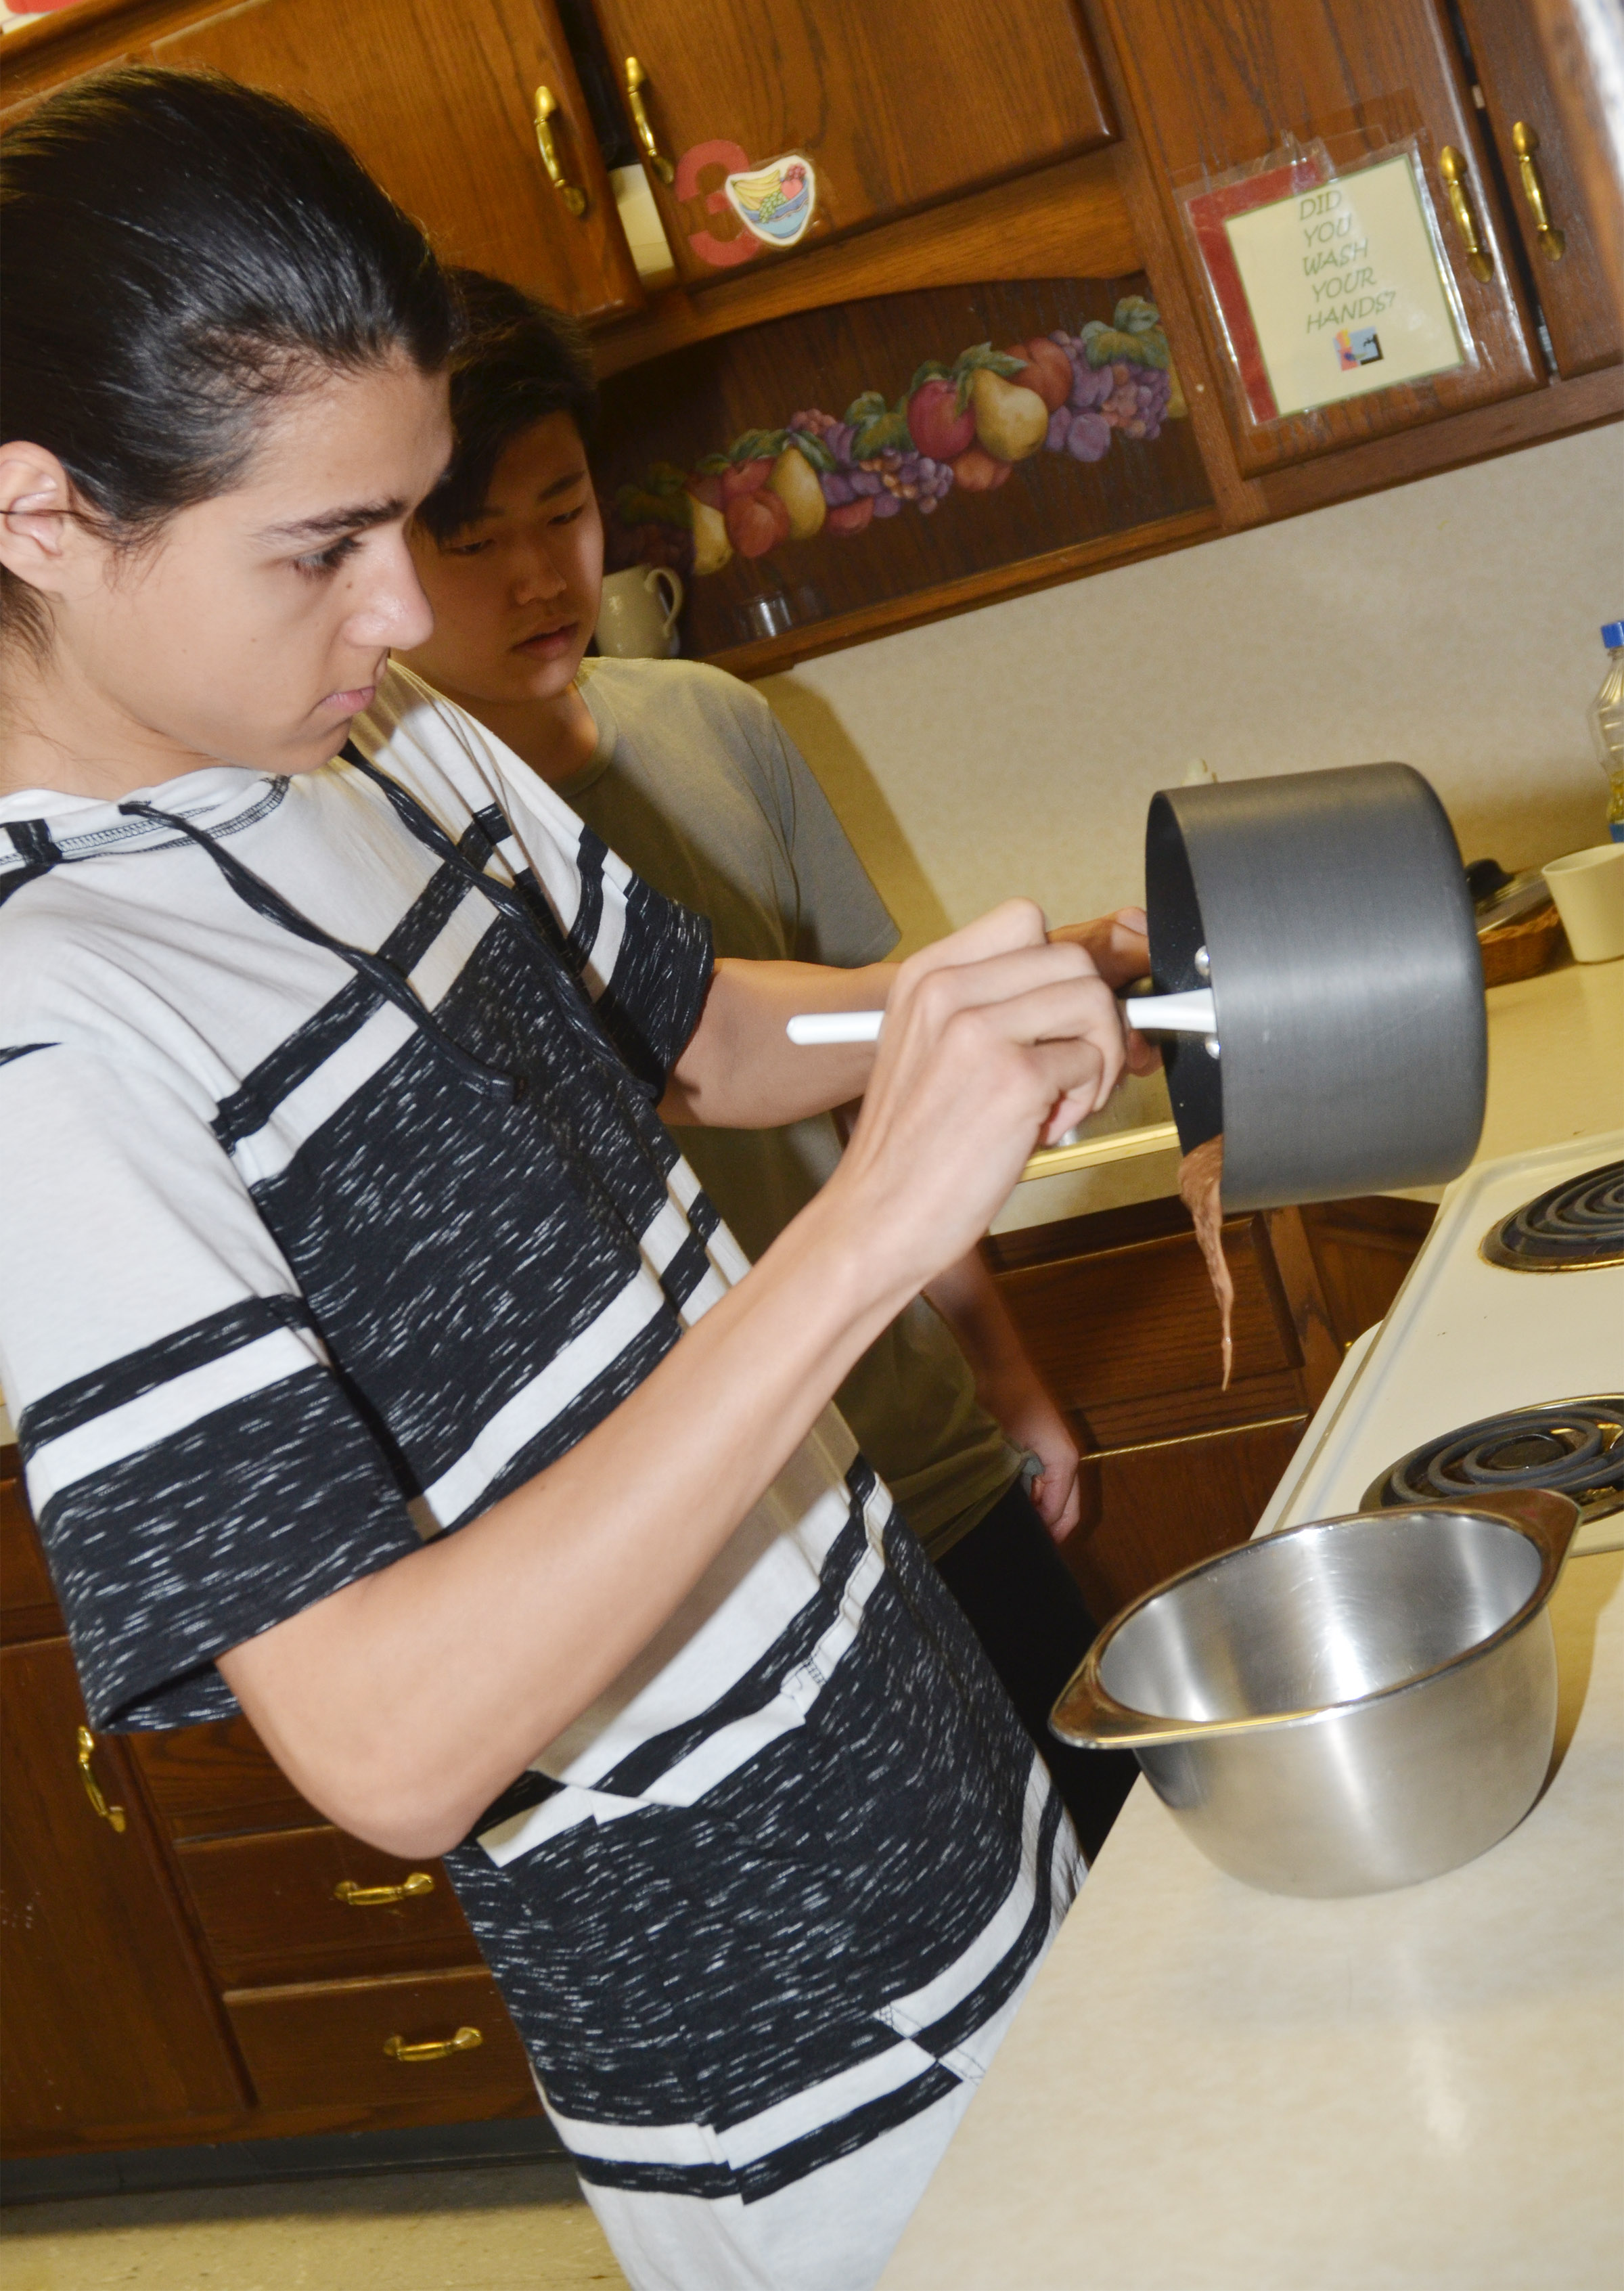 CHS senior Michael De Oliveira stirs the dessert he made for his final project.